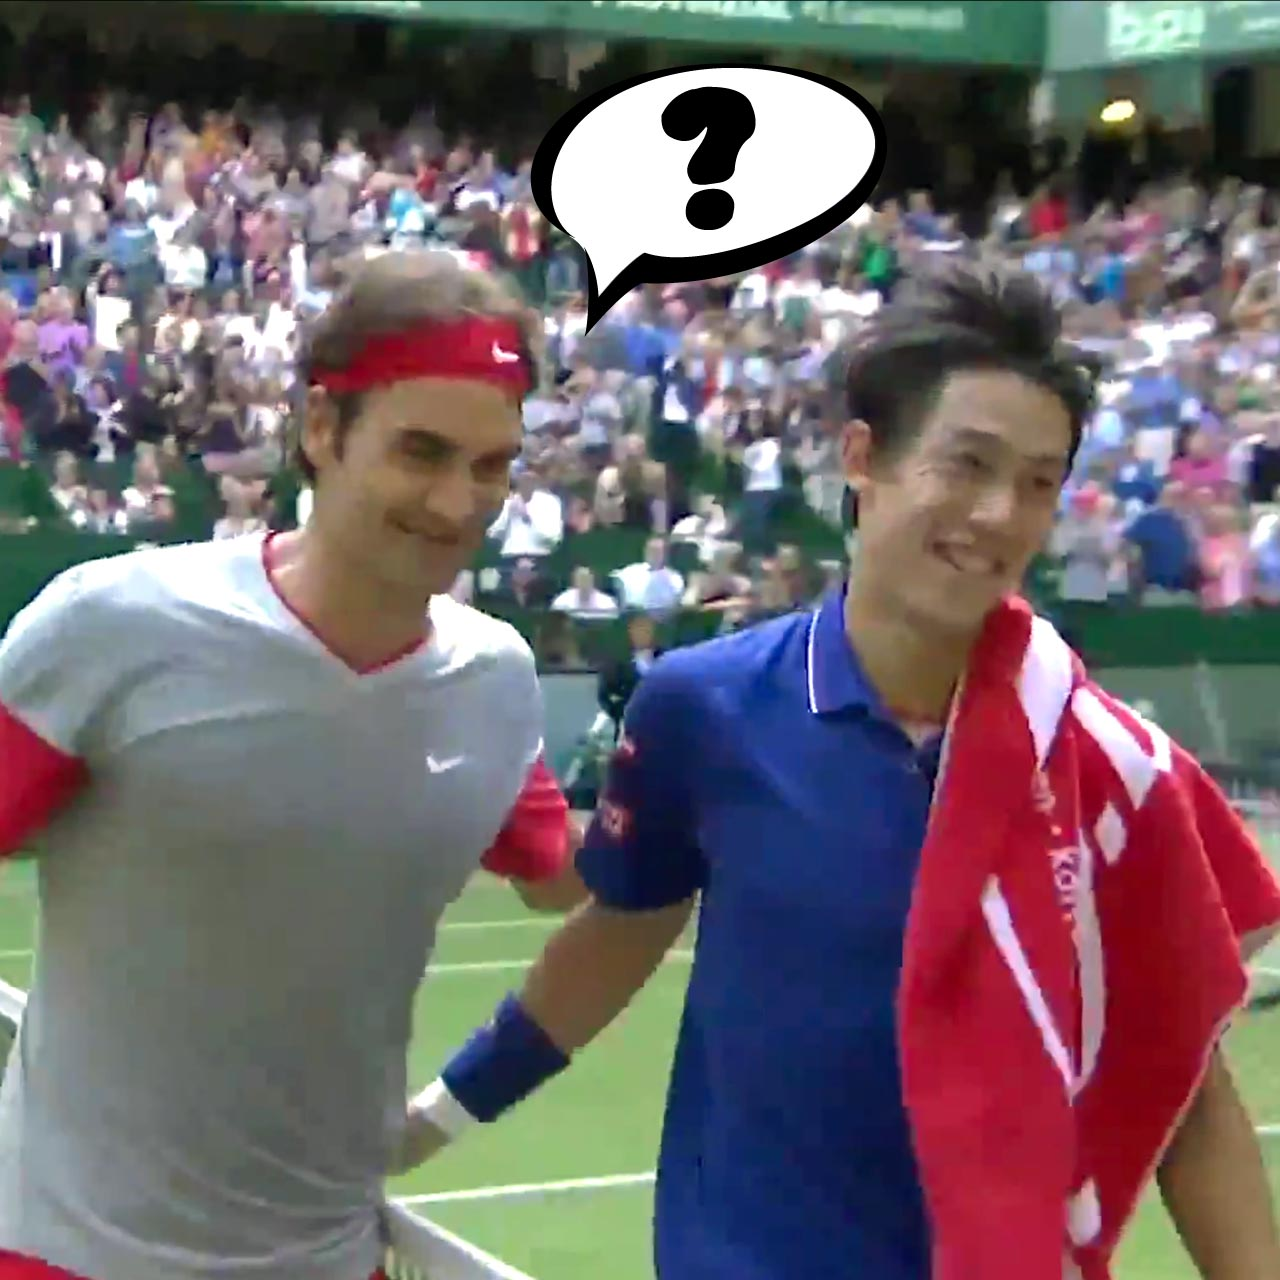 Roger Federer loses track of match point at Gerry Weber Open